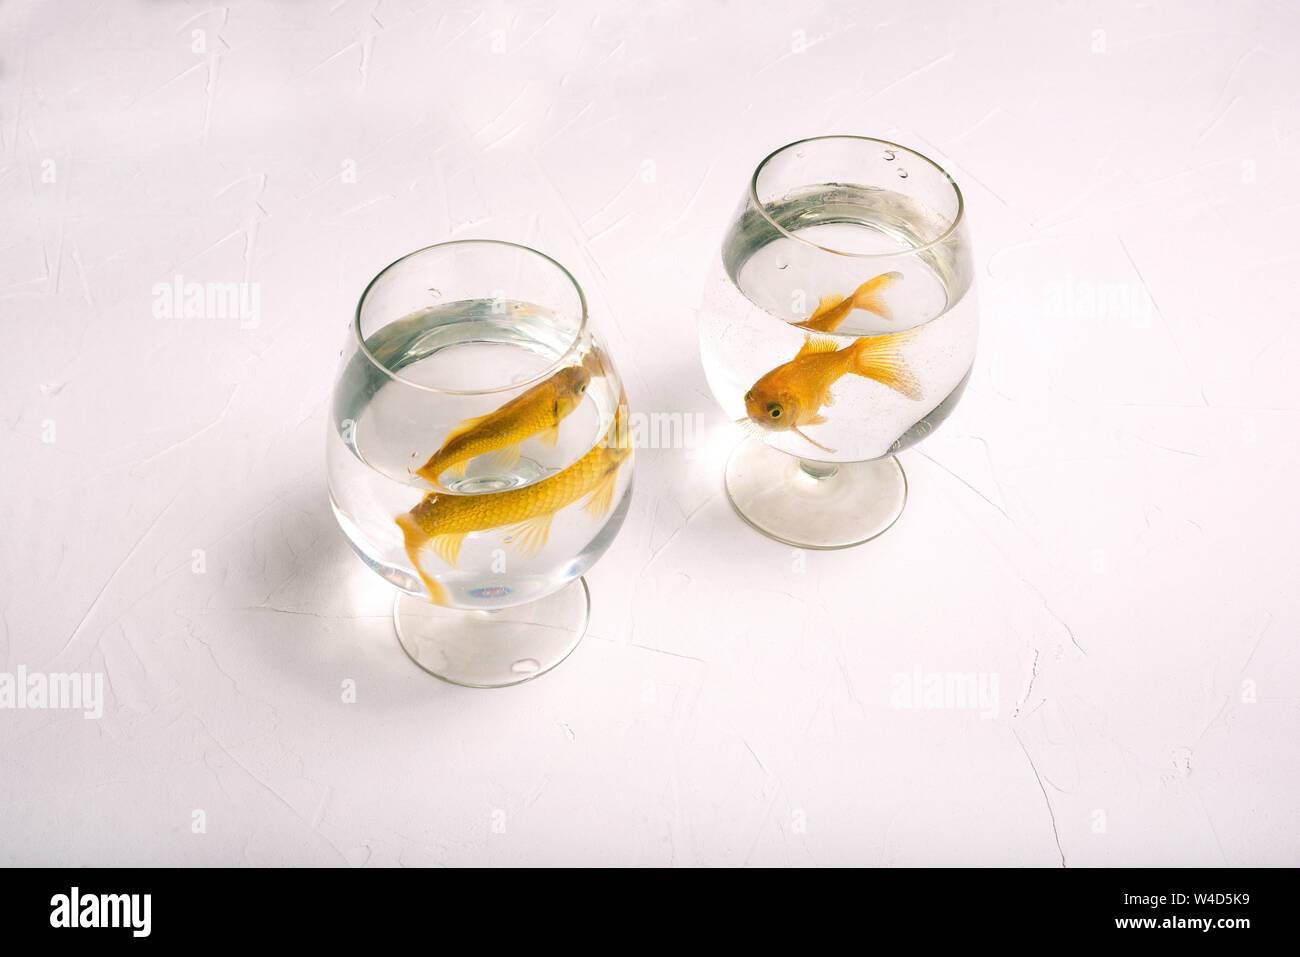 Separate glasses with goldfish. Two golden-colored fish swim in the water. Lonely fish in glasses on a white background. Aquarium fish. Separation Stock Photo